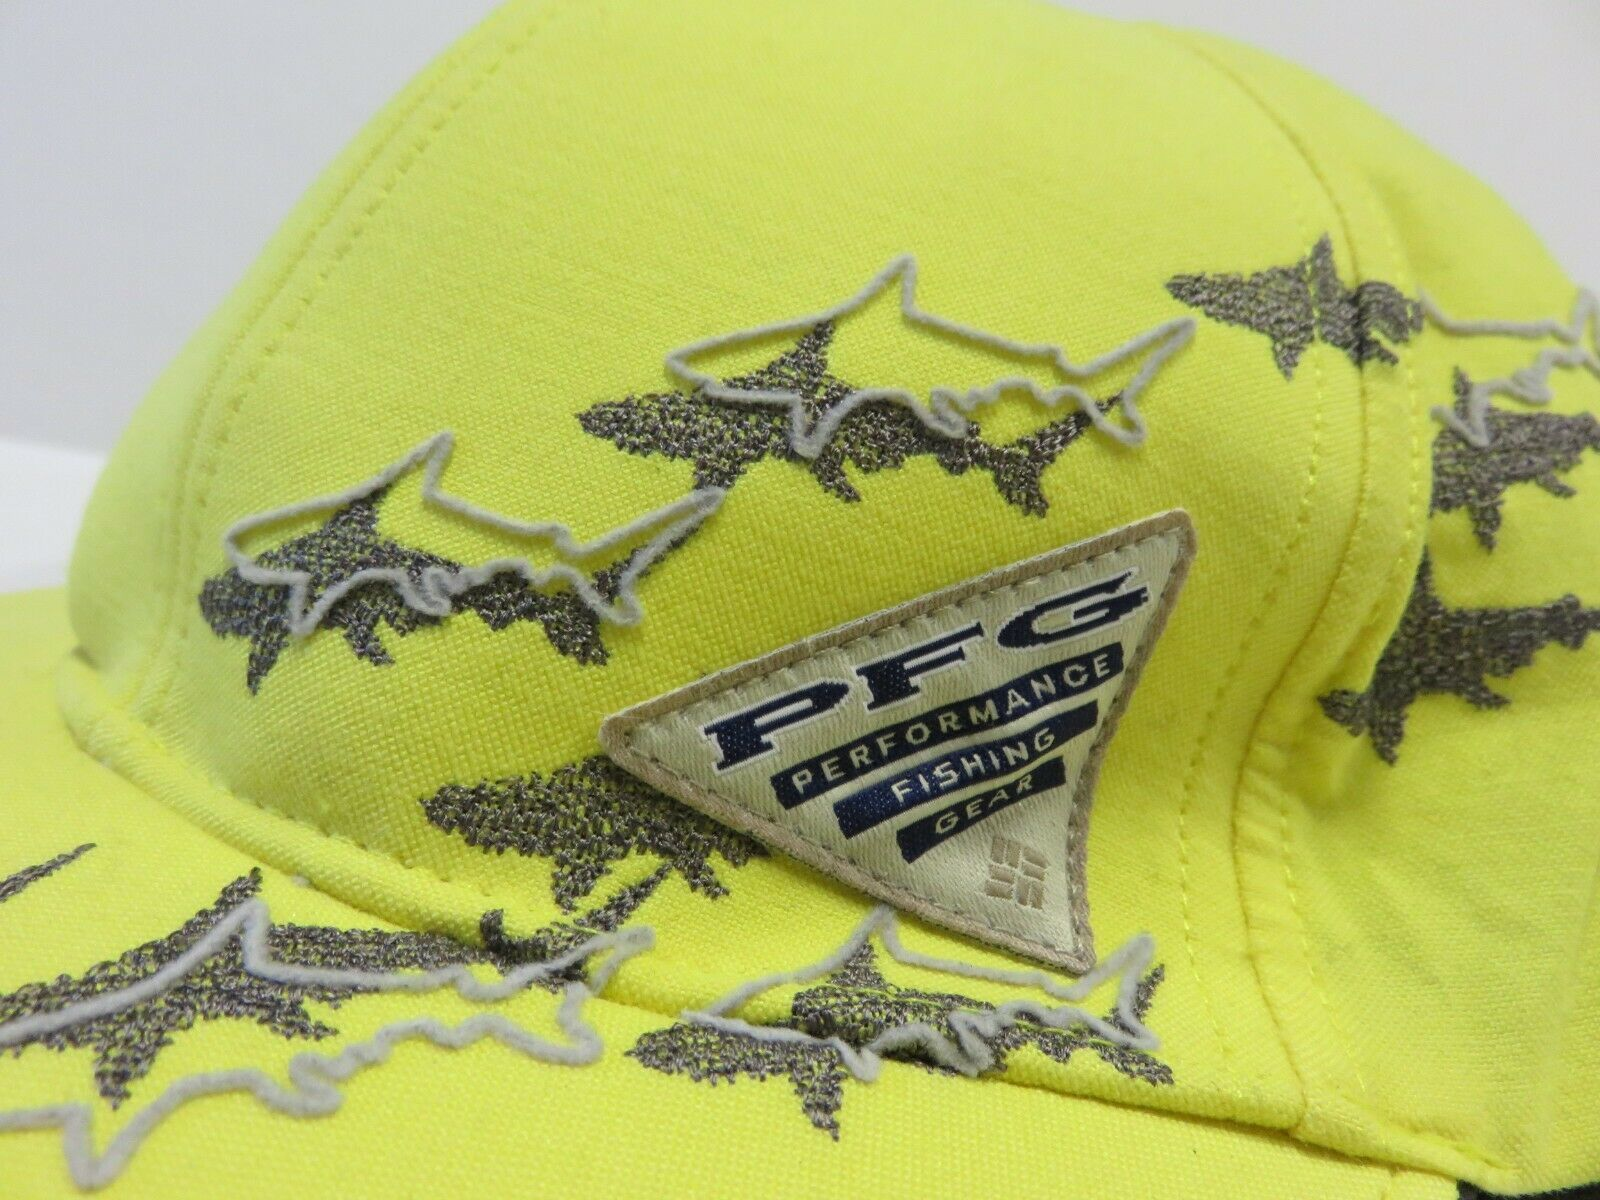 COLUMBIA Sportswear Performance Fishing Gear Yellow Fitted Hat Adult Size L/XL